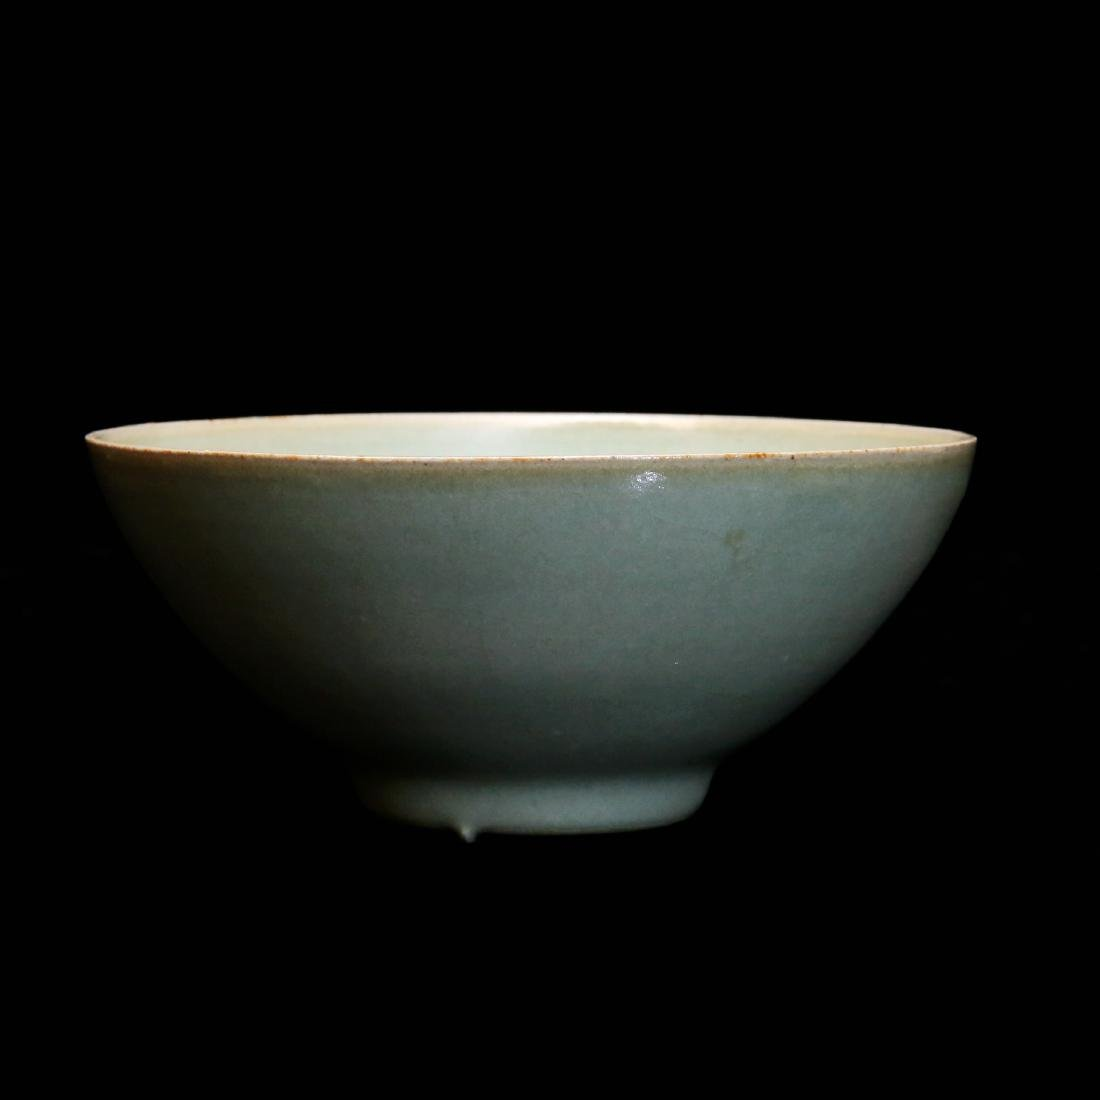 THE FIVE DYNASTIES, A YAOZHOU KILN BOWL